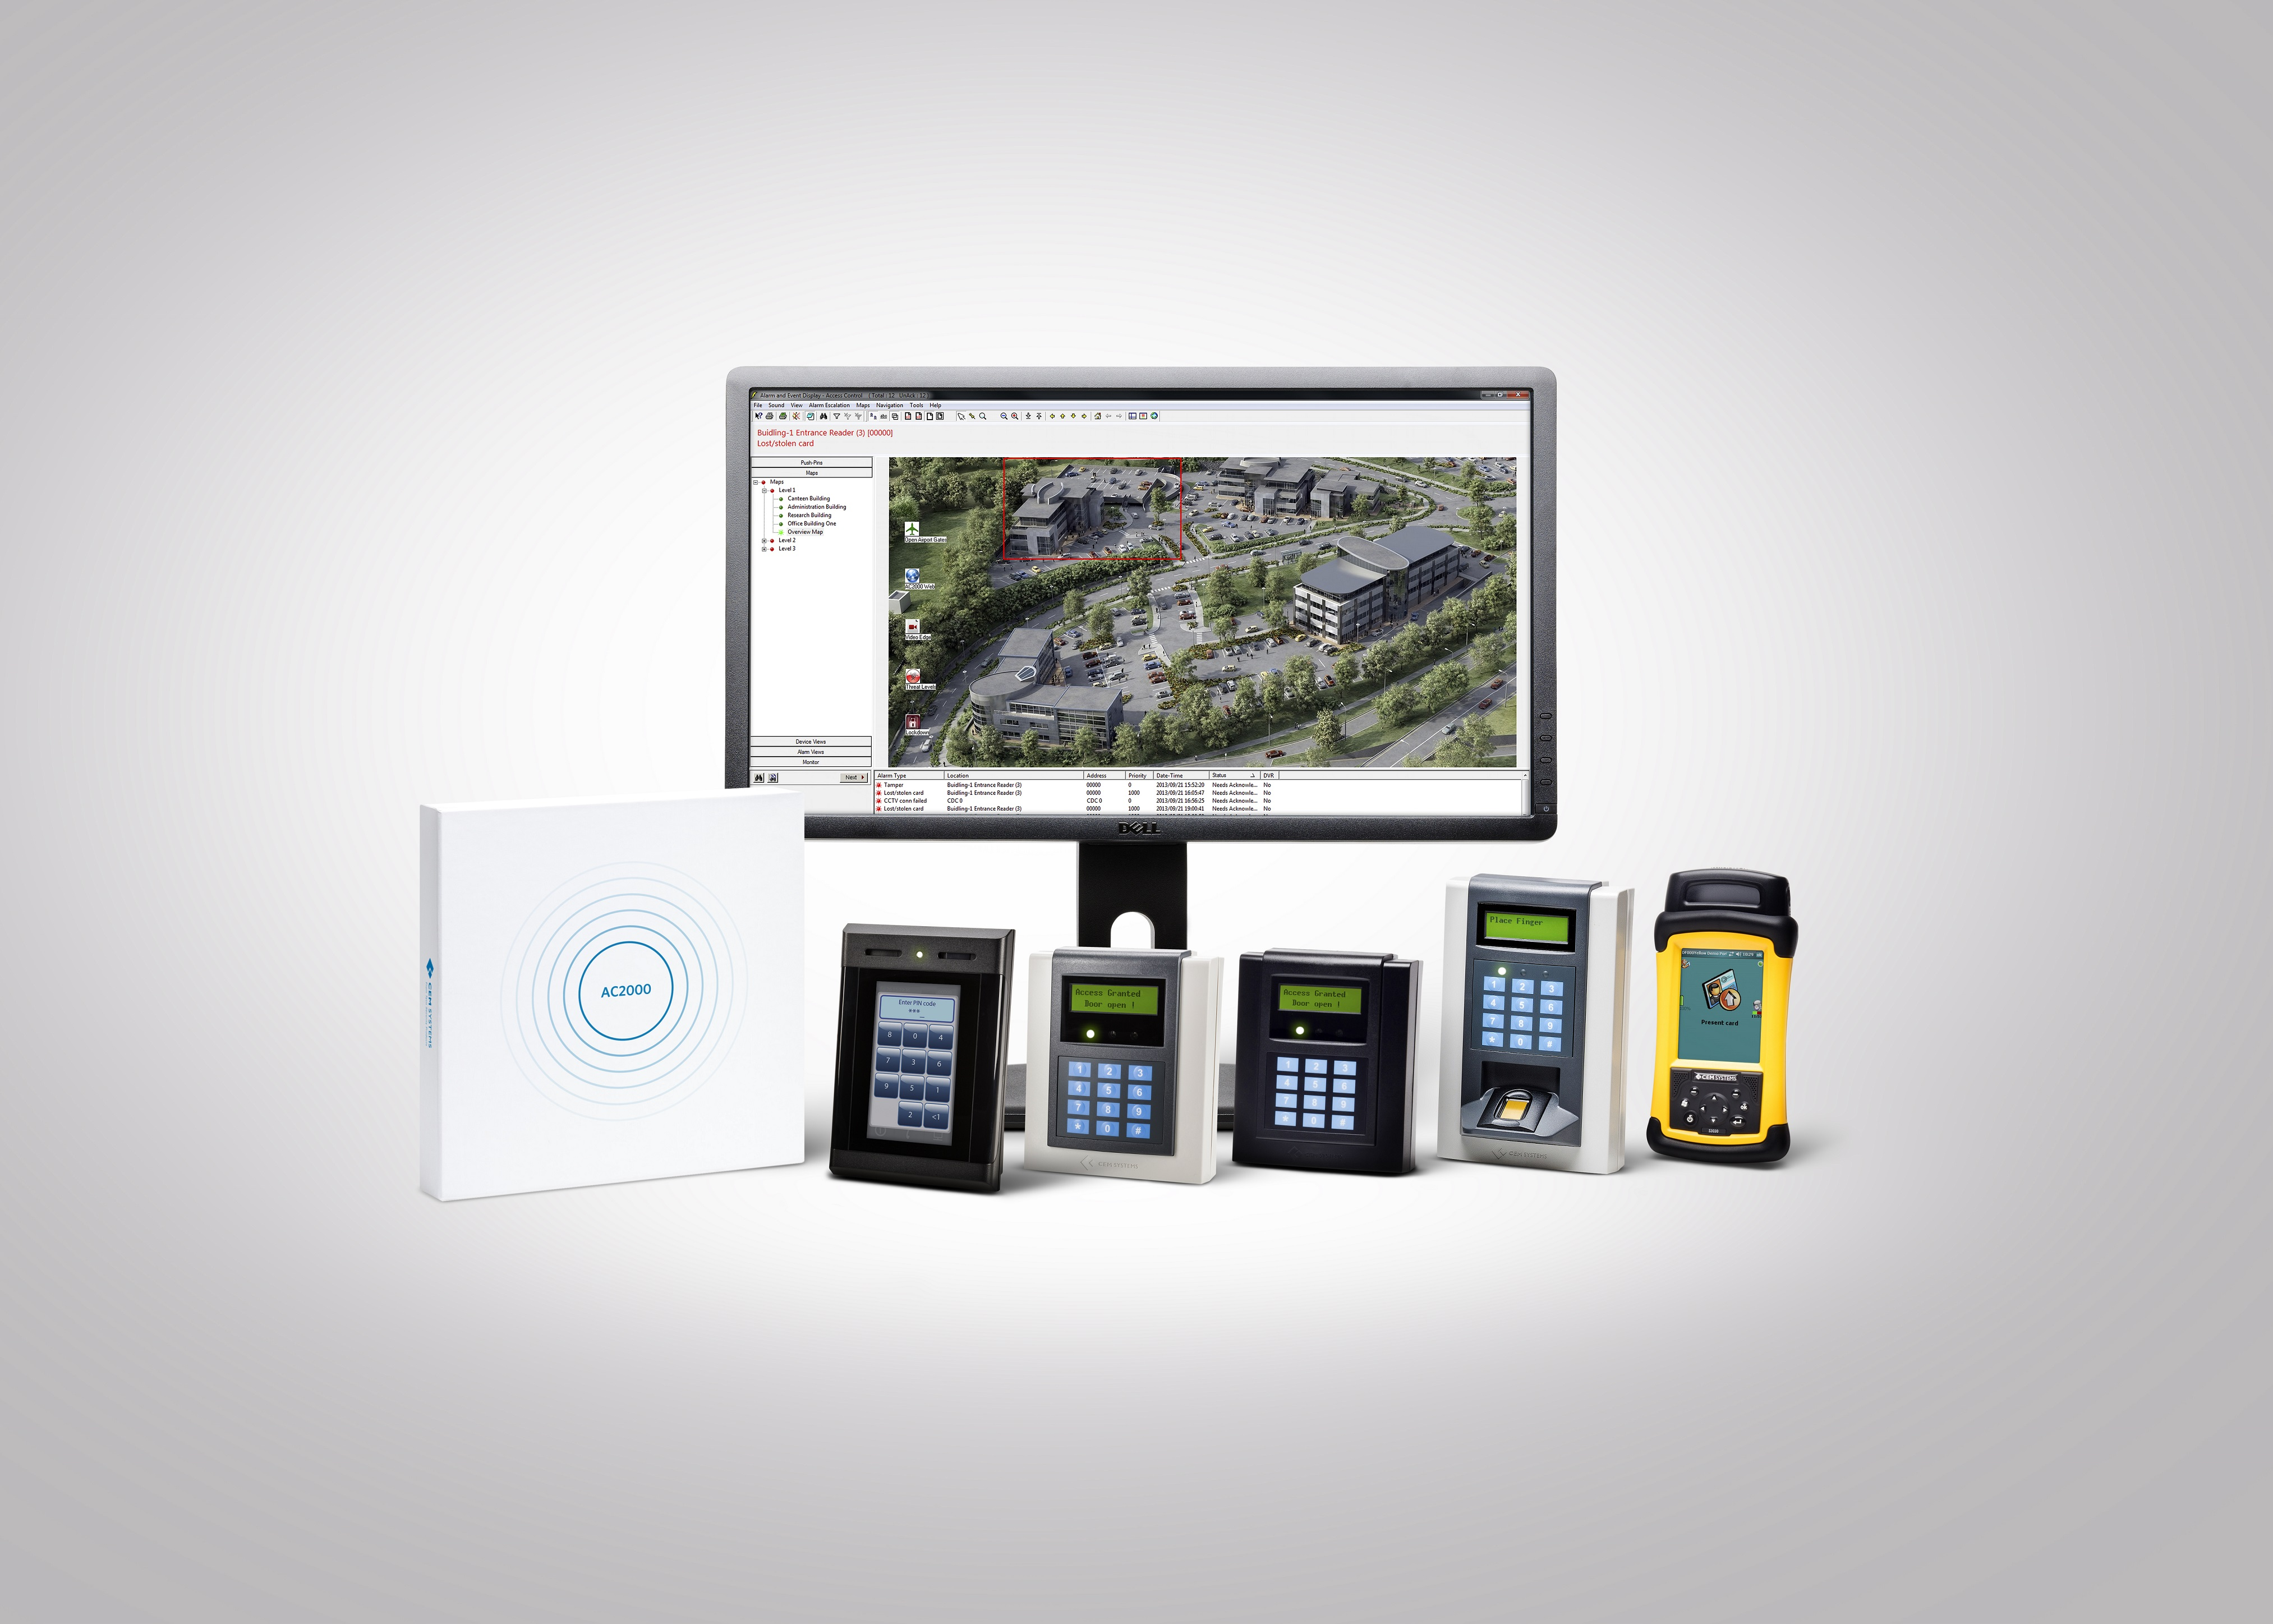 AC2000 access control & security management system